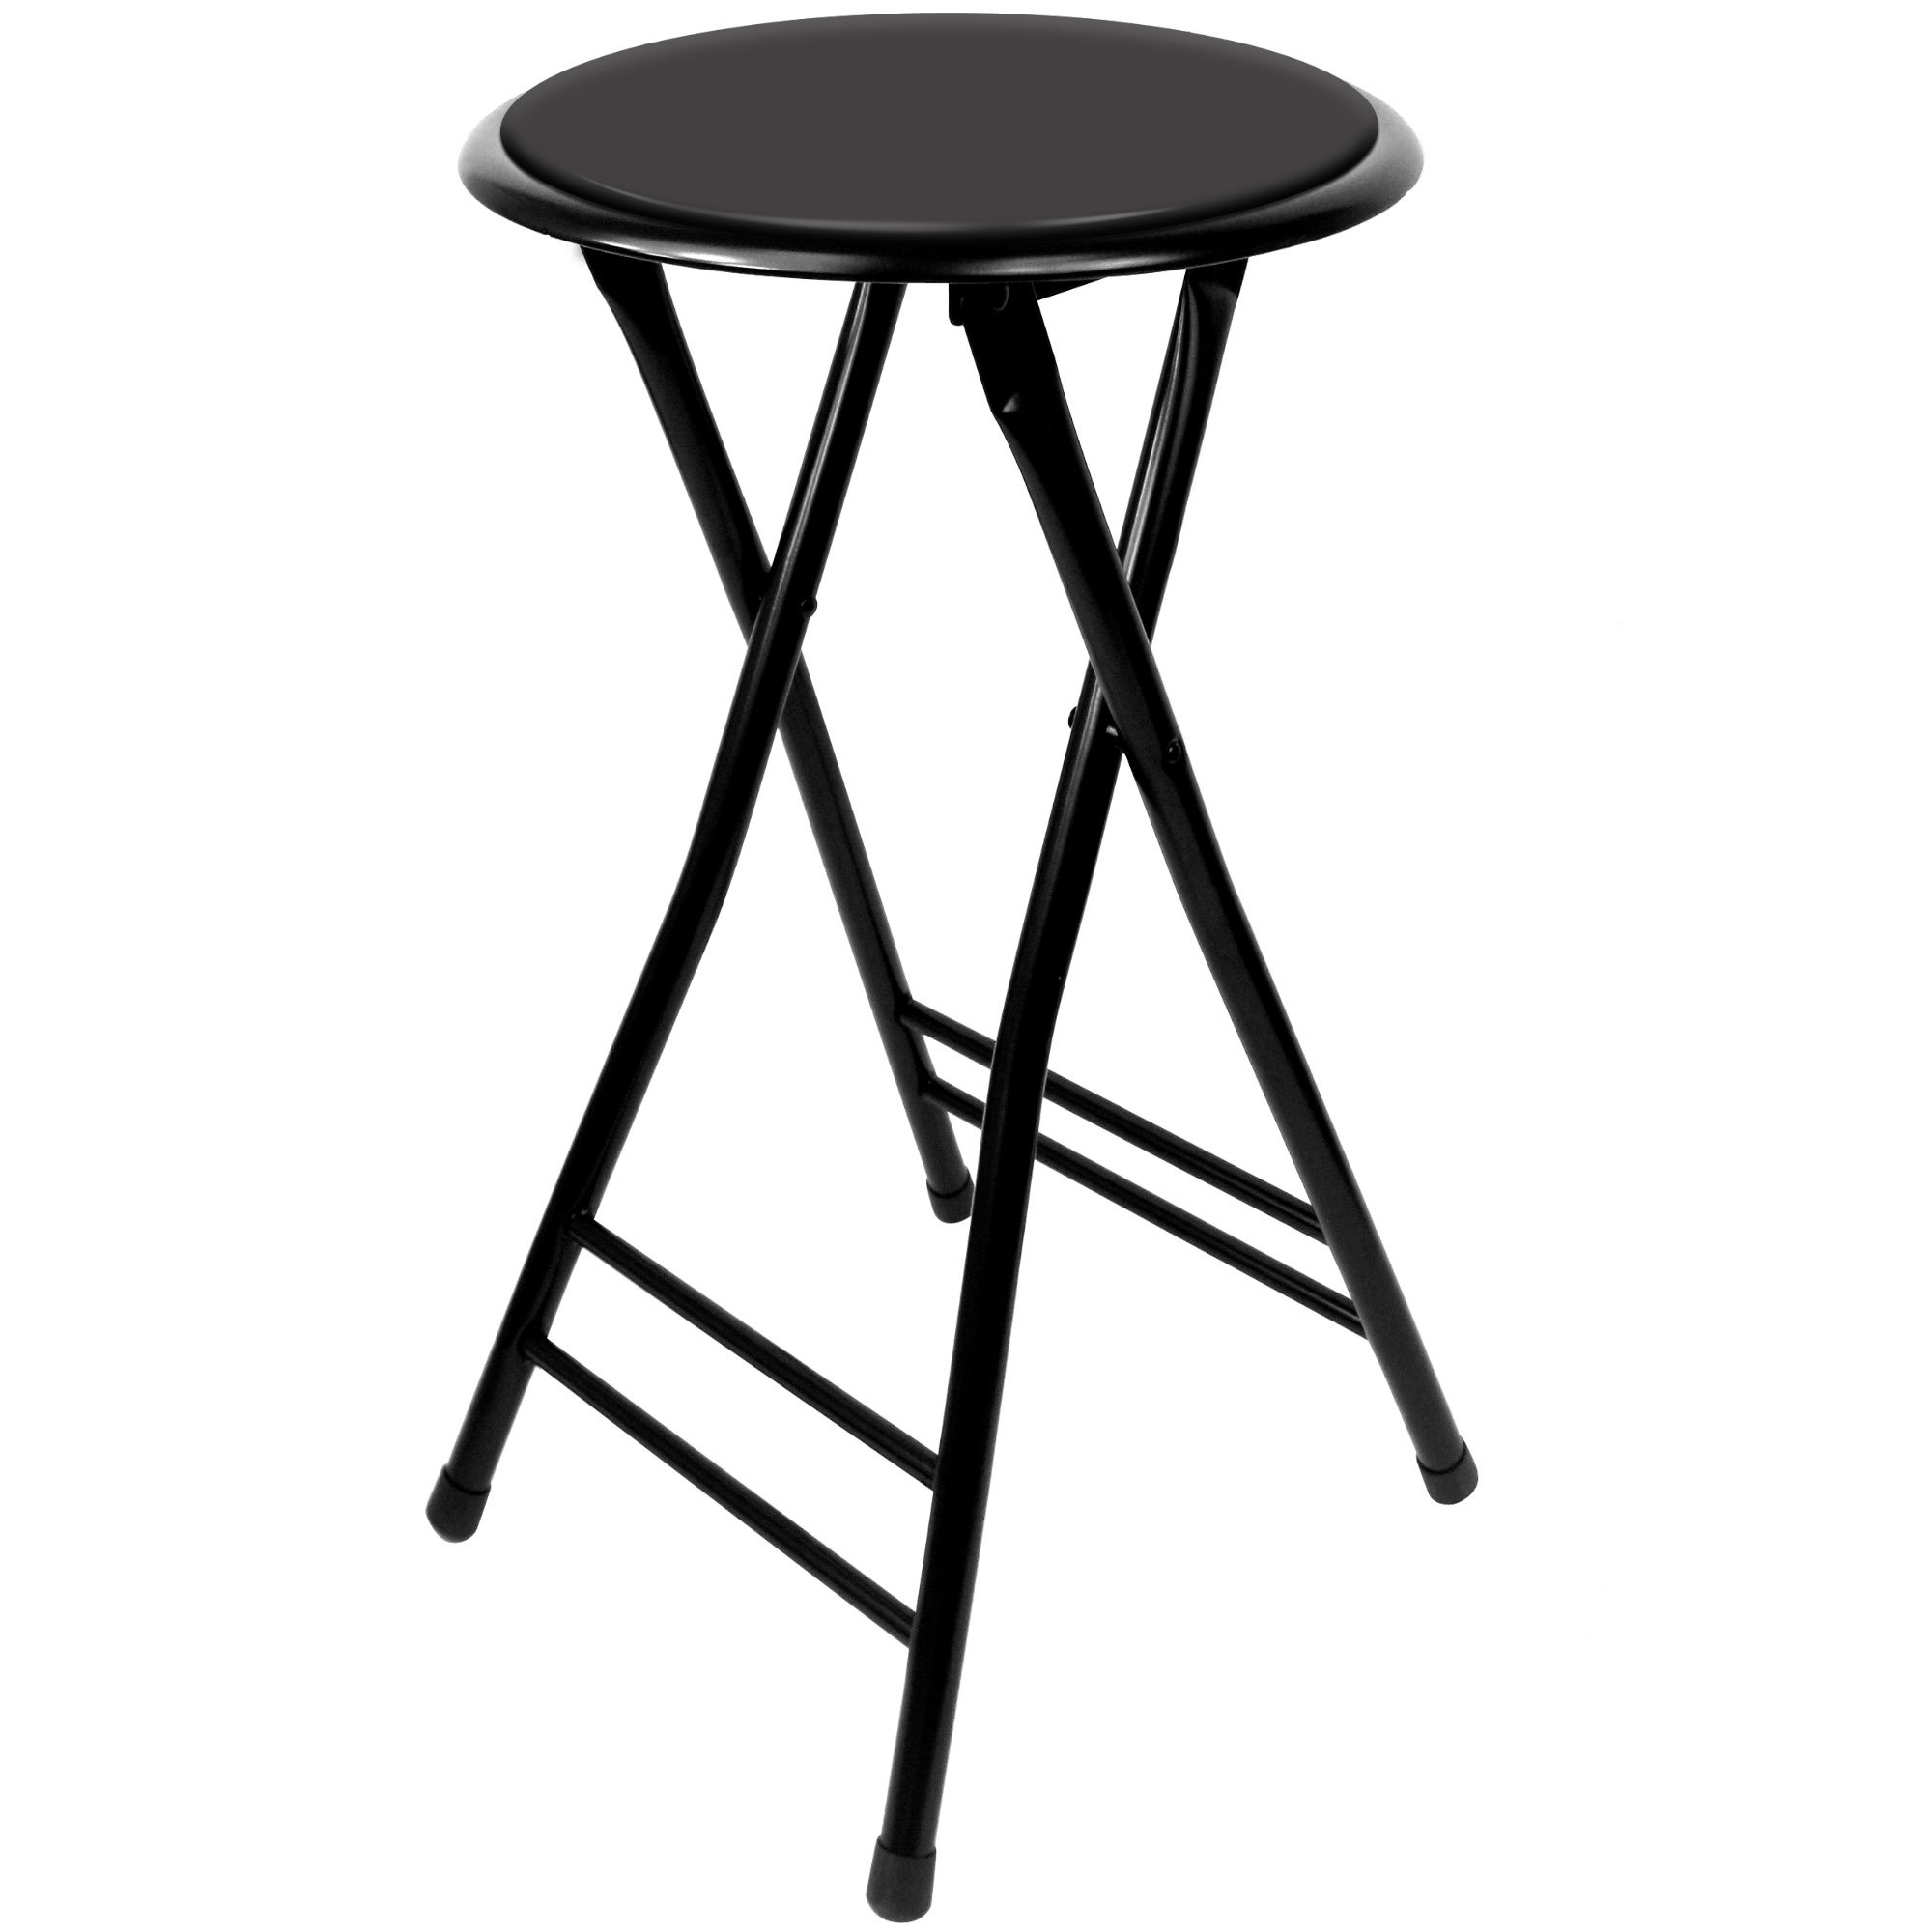 Trademark Home Folding Stool - Heavy Duty 24-Inch Collapsible Padded Round Stool with 300 Pound Capacity for Dorm, Rec Room or Gameroom (Black) by Trademark Home